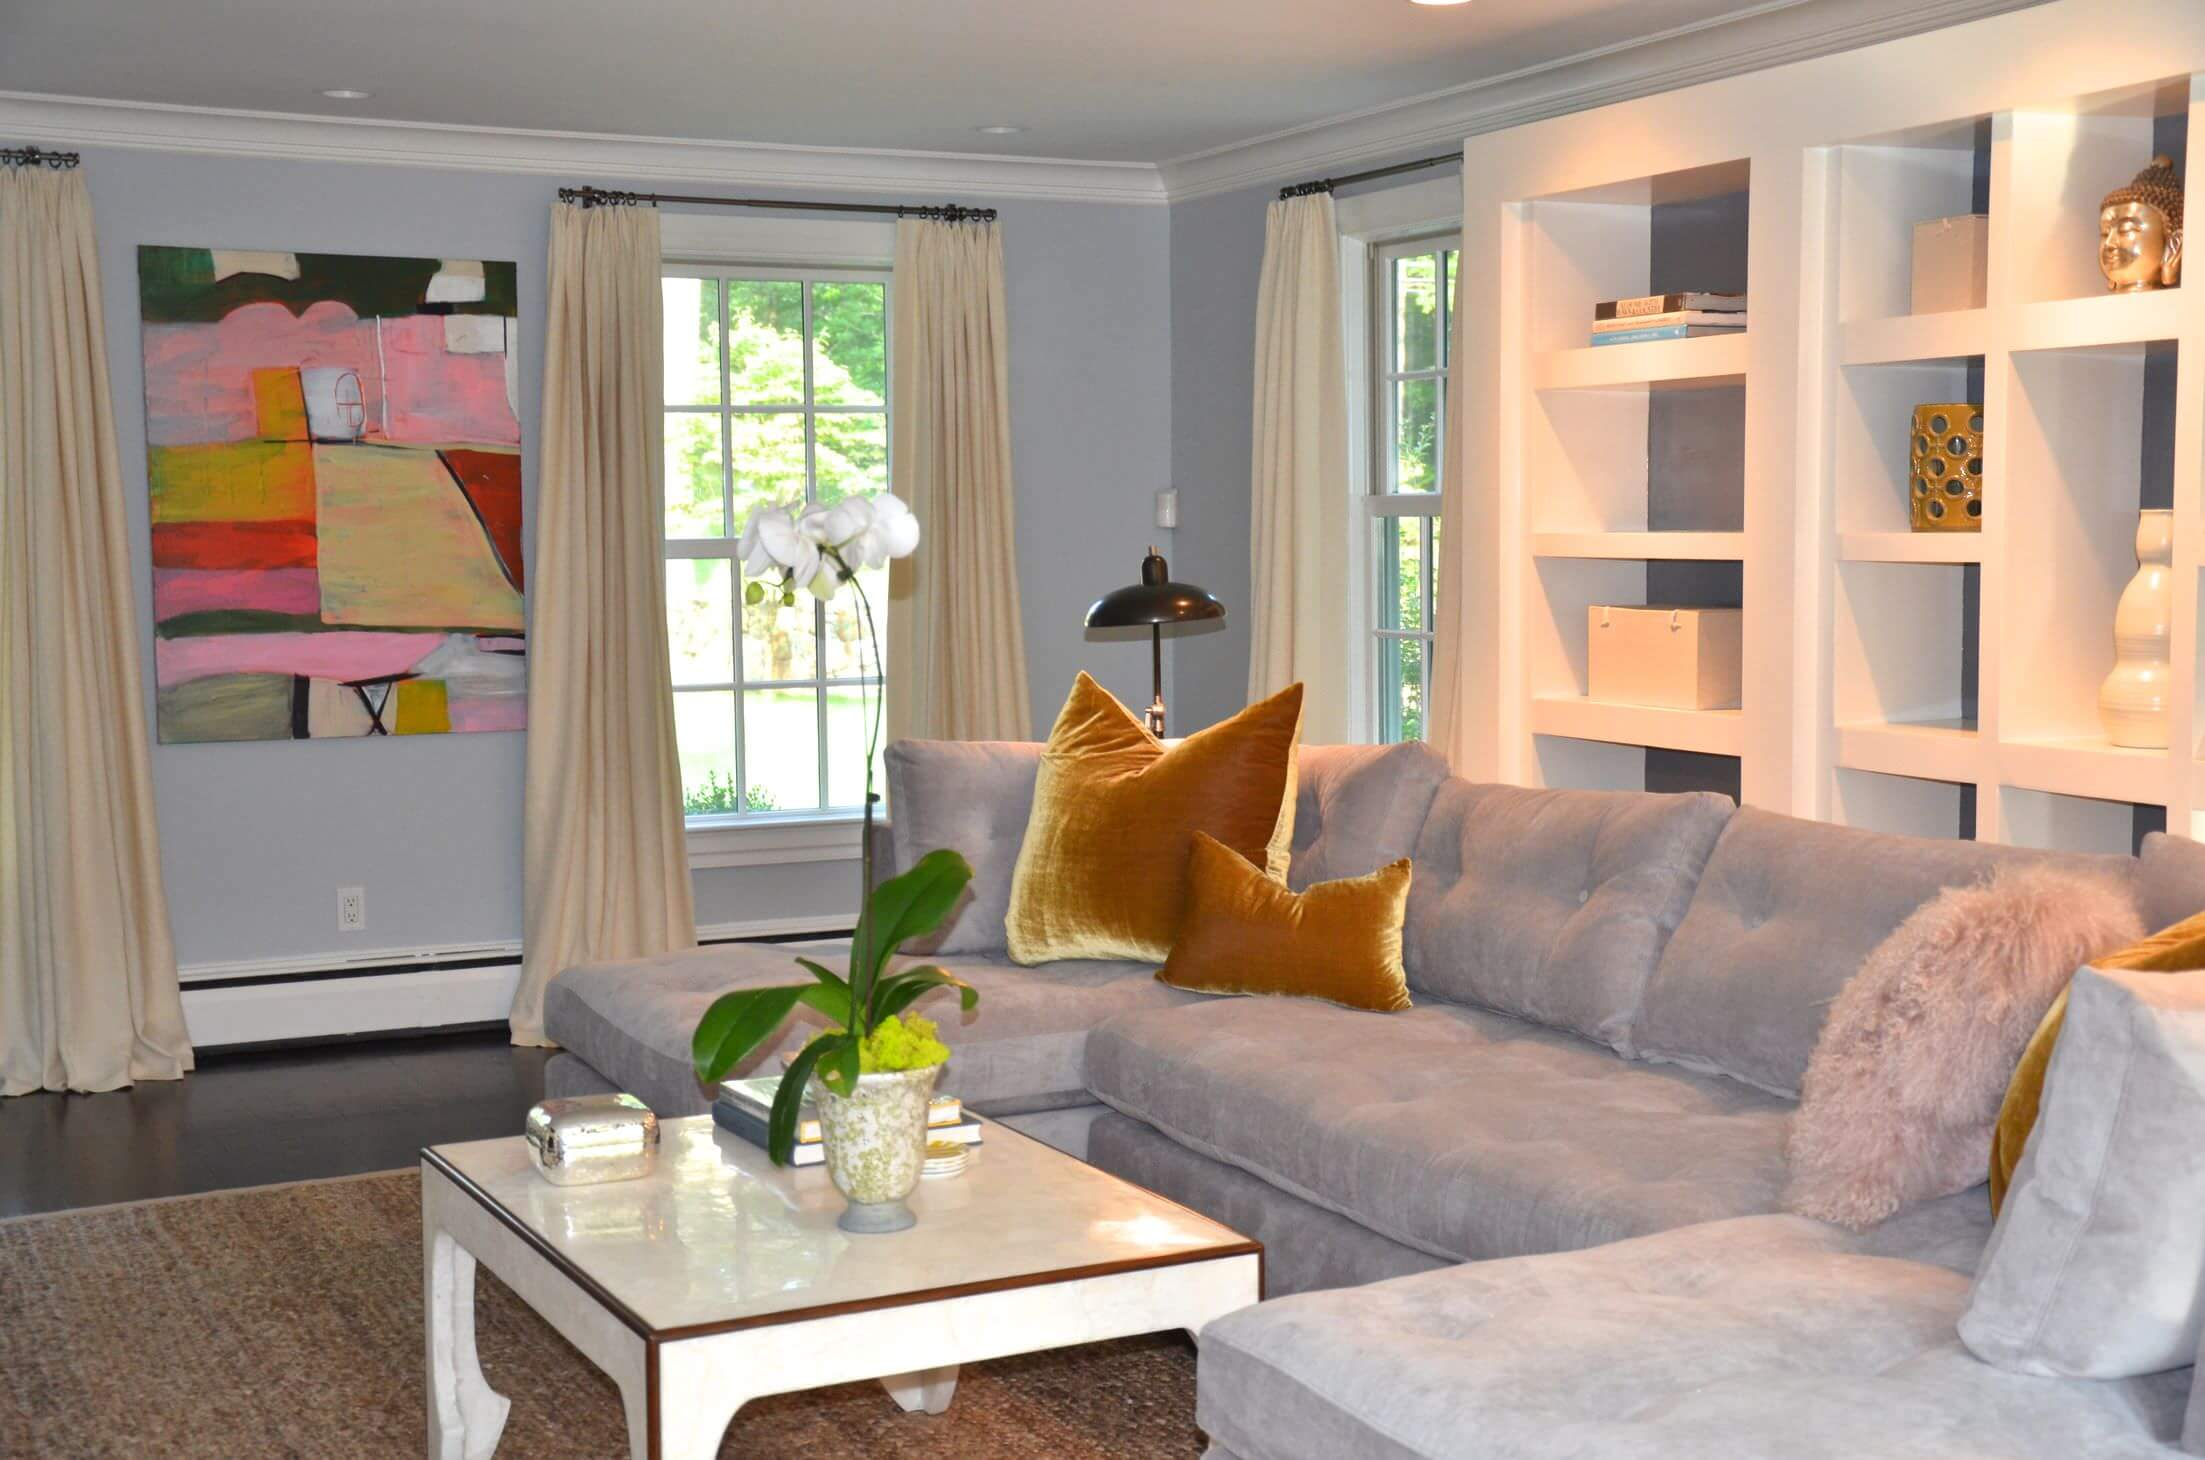 Best Living Room Colors And Color Combinations 2020,Family House 5 Bedroom House Plans Single Story 3d